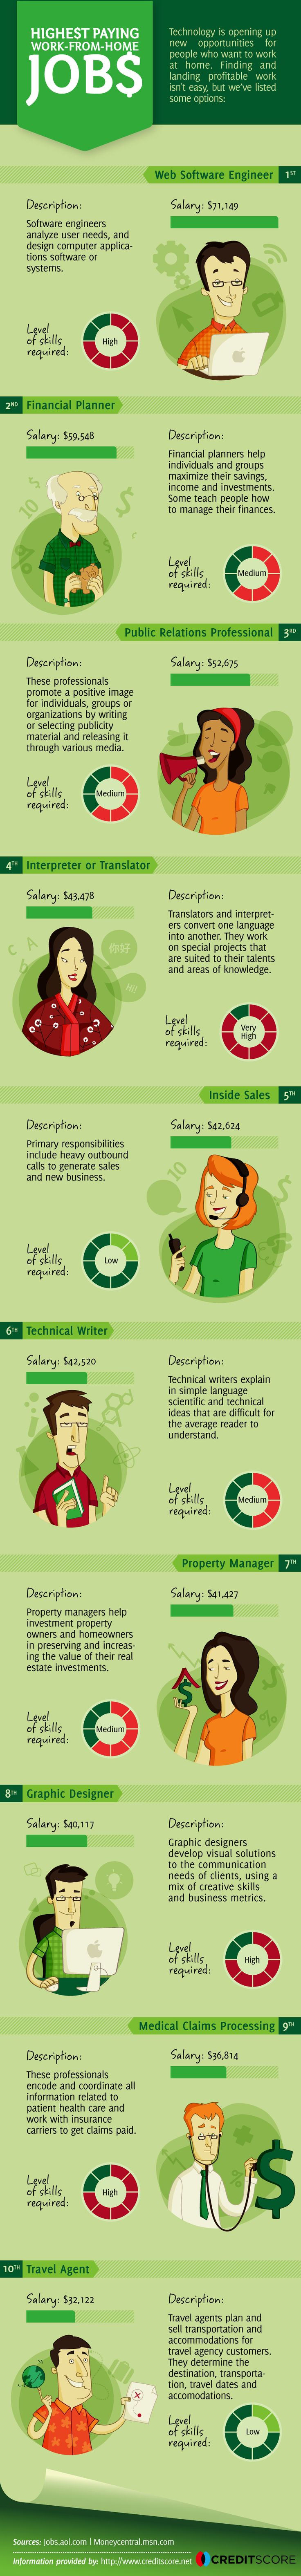 the highest paying work from home jobs infographic courtesy of creditscore net creditscore net image of girl on couch courtesy of shutterstock